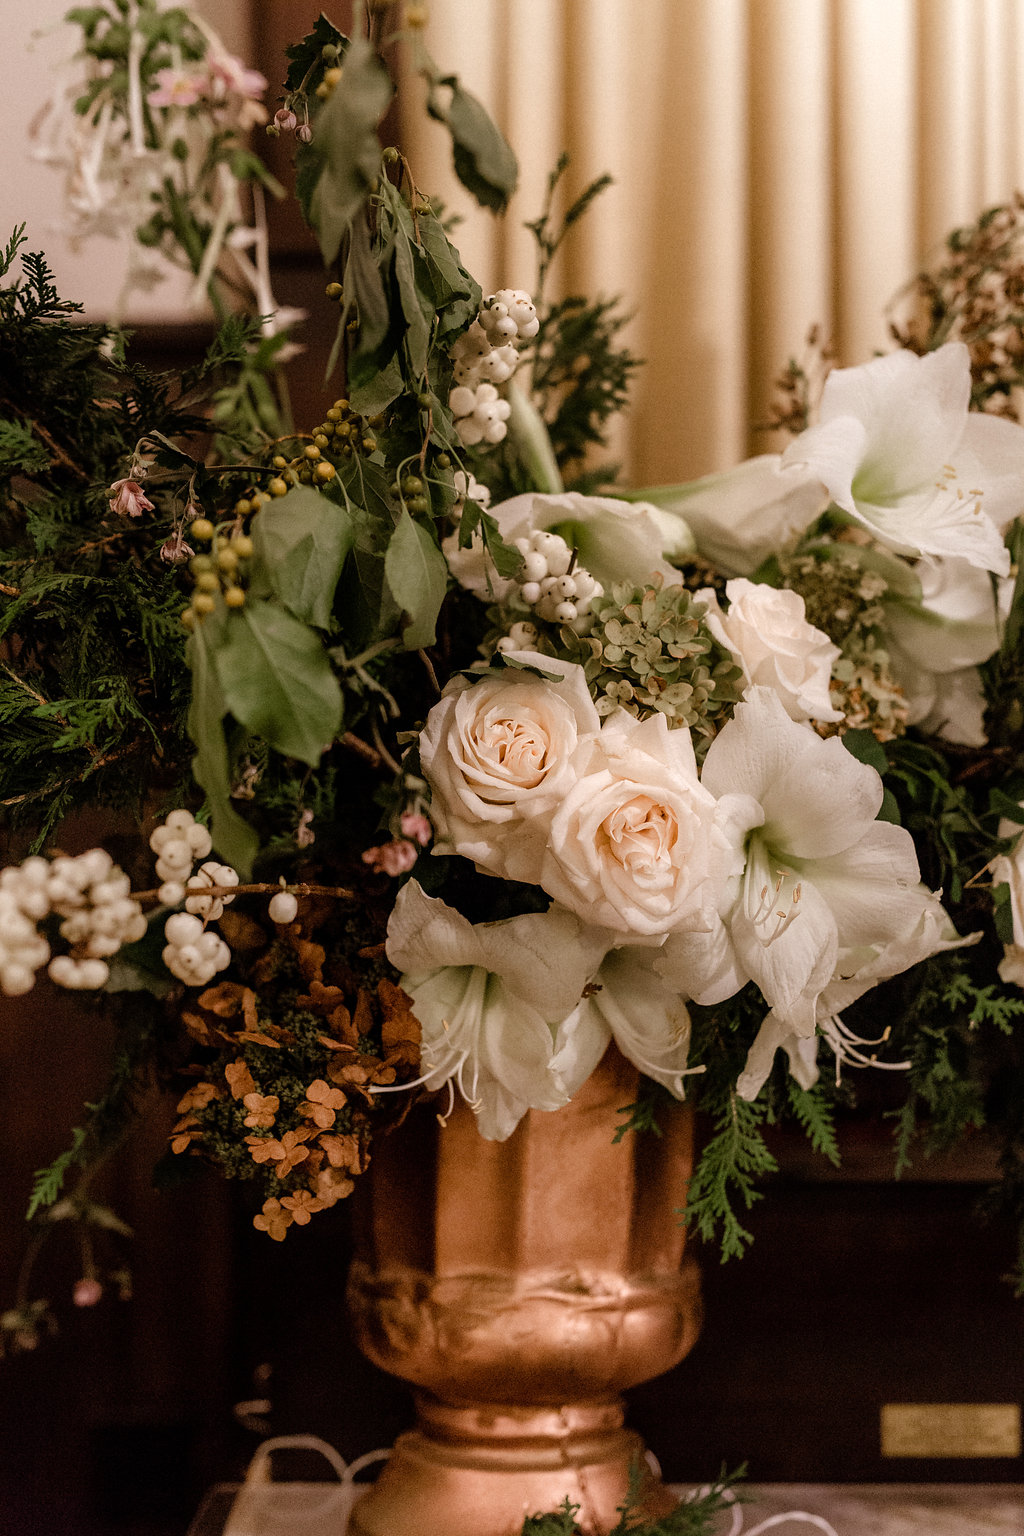 Winter wedding flowers by Nectar & Root | Wedding floral design services in Burlington, Vermont (VT) | Centerpiece with snowberry, amaryllis, garden roses, snowberries, evergreens, nicotiana